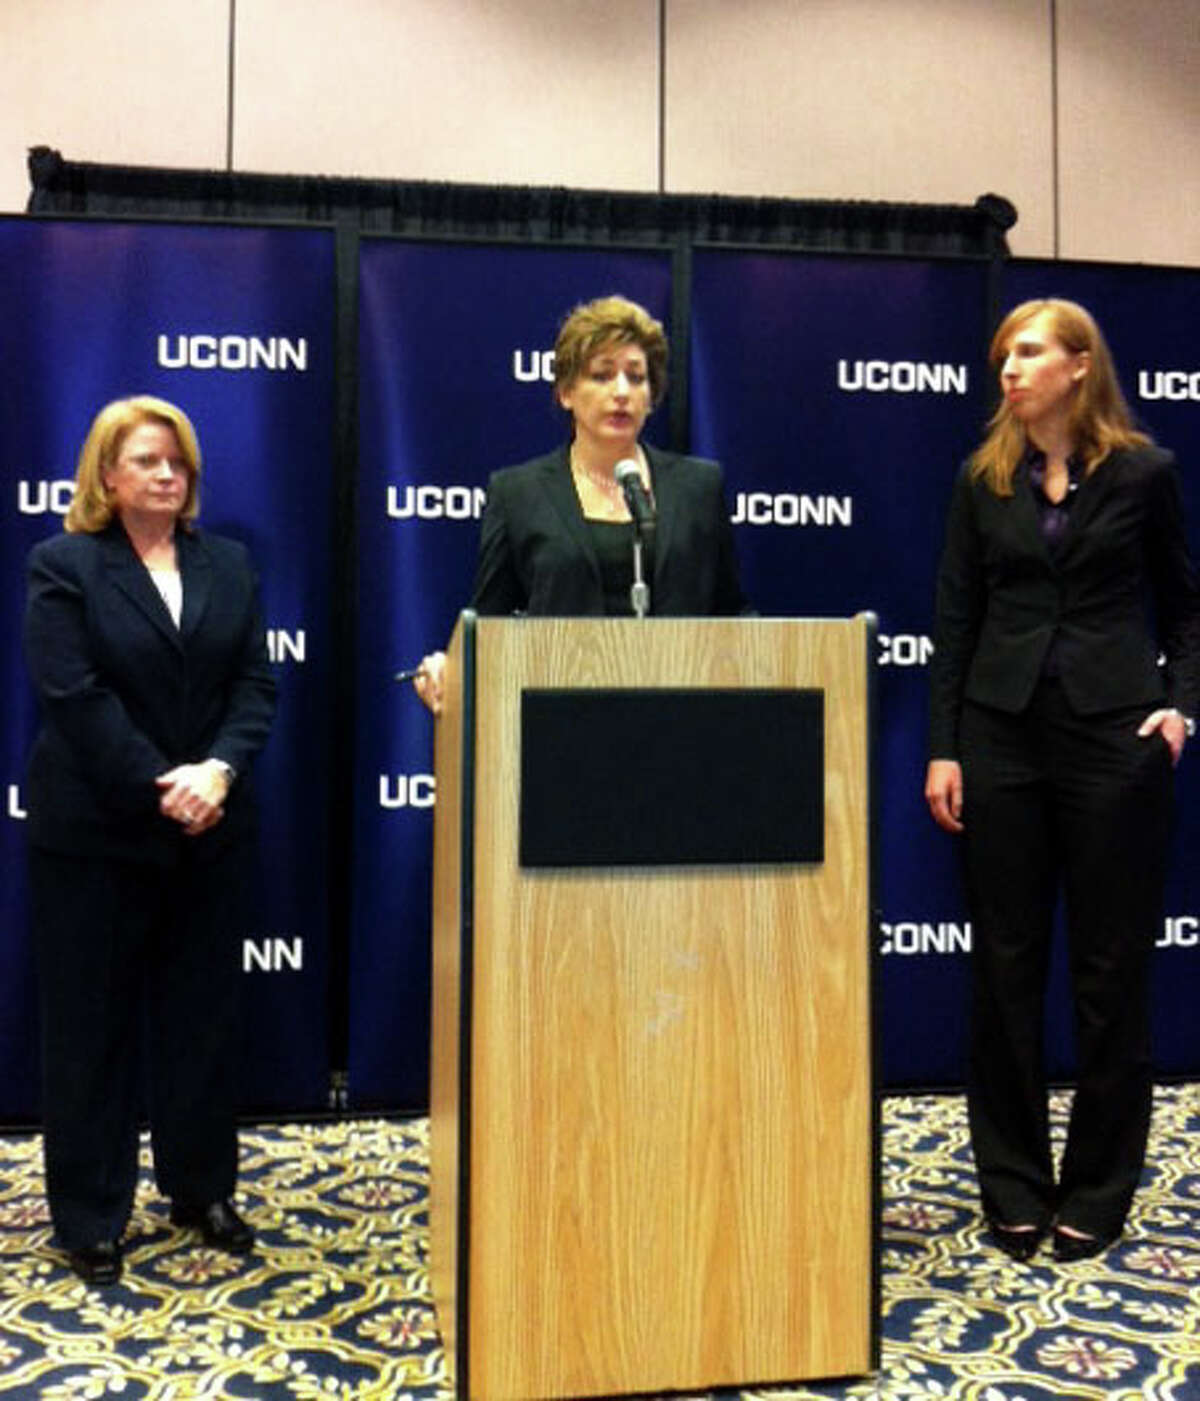 University of Connecticut President Susan Herbst said that she was stunned by charges that the university is indifferent to sexual assaults on campus and insisted they have no basis in fact .From left UConn police chief Barbara O'Connor, president Susan Herbst and title IX officer Elizabeth Conklin at a press conference in Storrs, Conn. on Wednesday, Oct. 23, 2013.